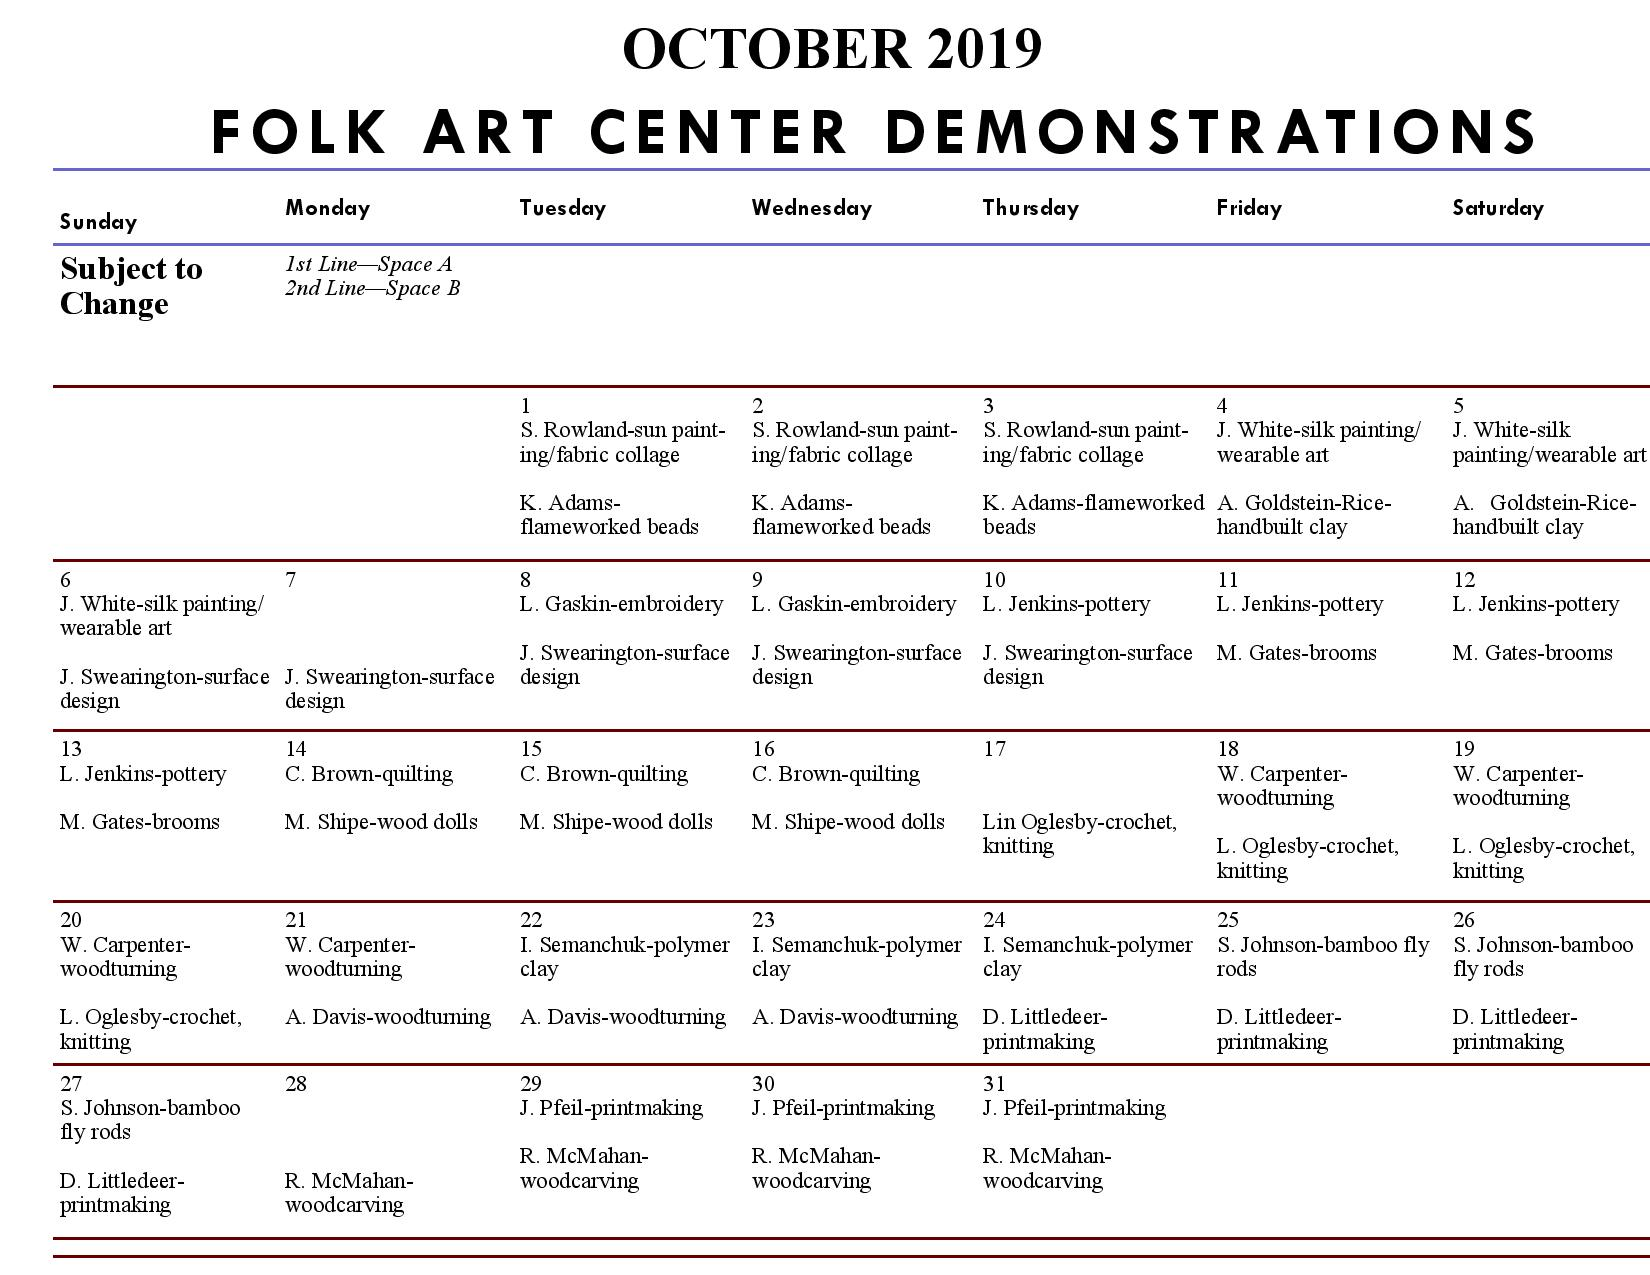 craft demonstrations, craft classes, what to do in asheville, october events asheville, asheville craft, blue ridge parkway